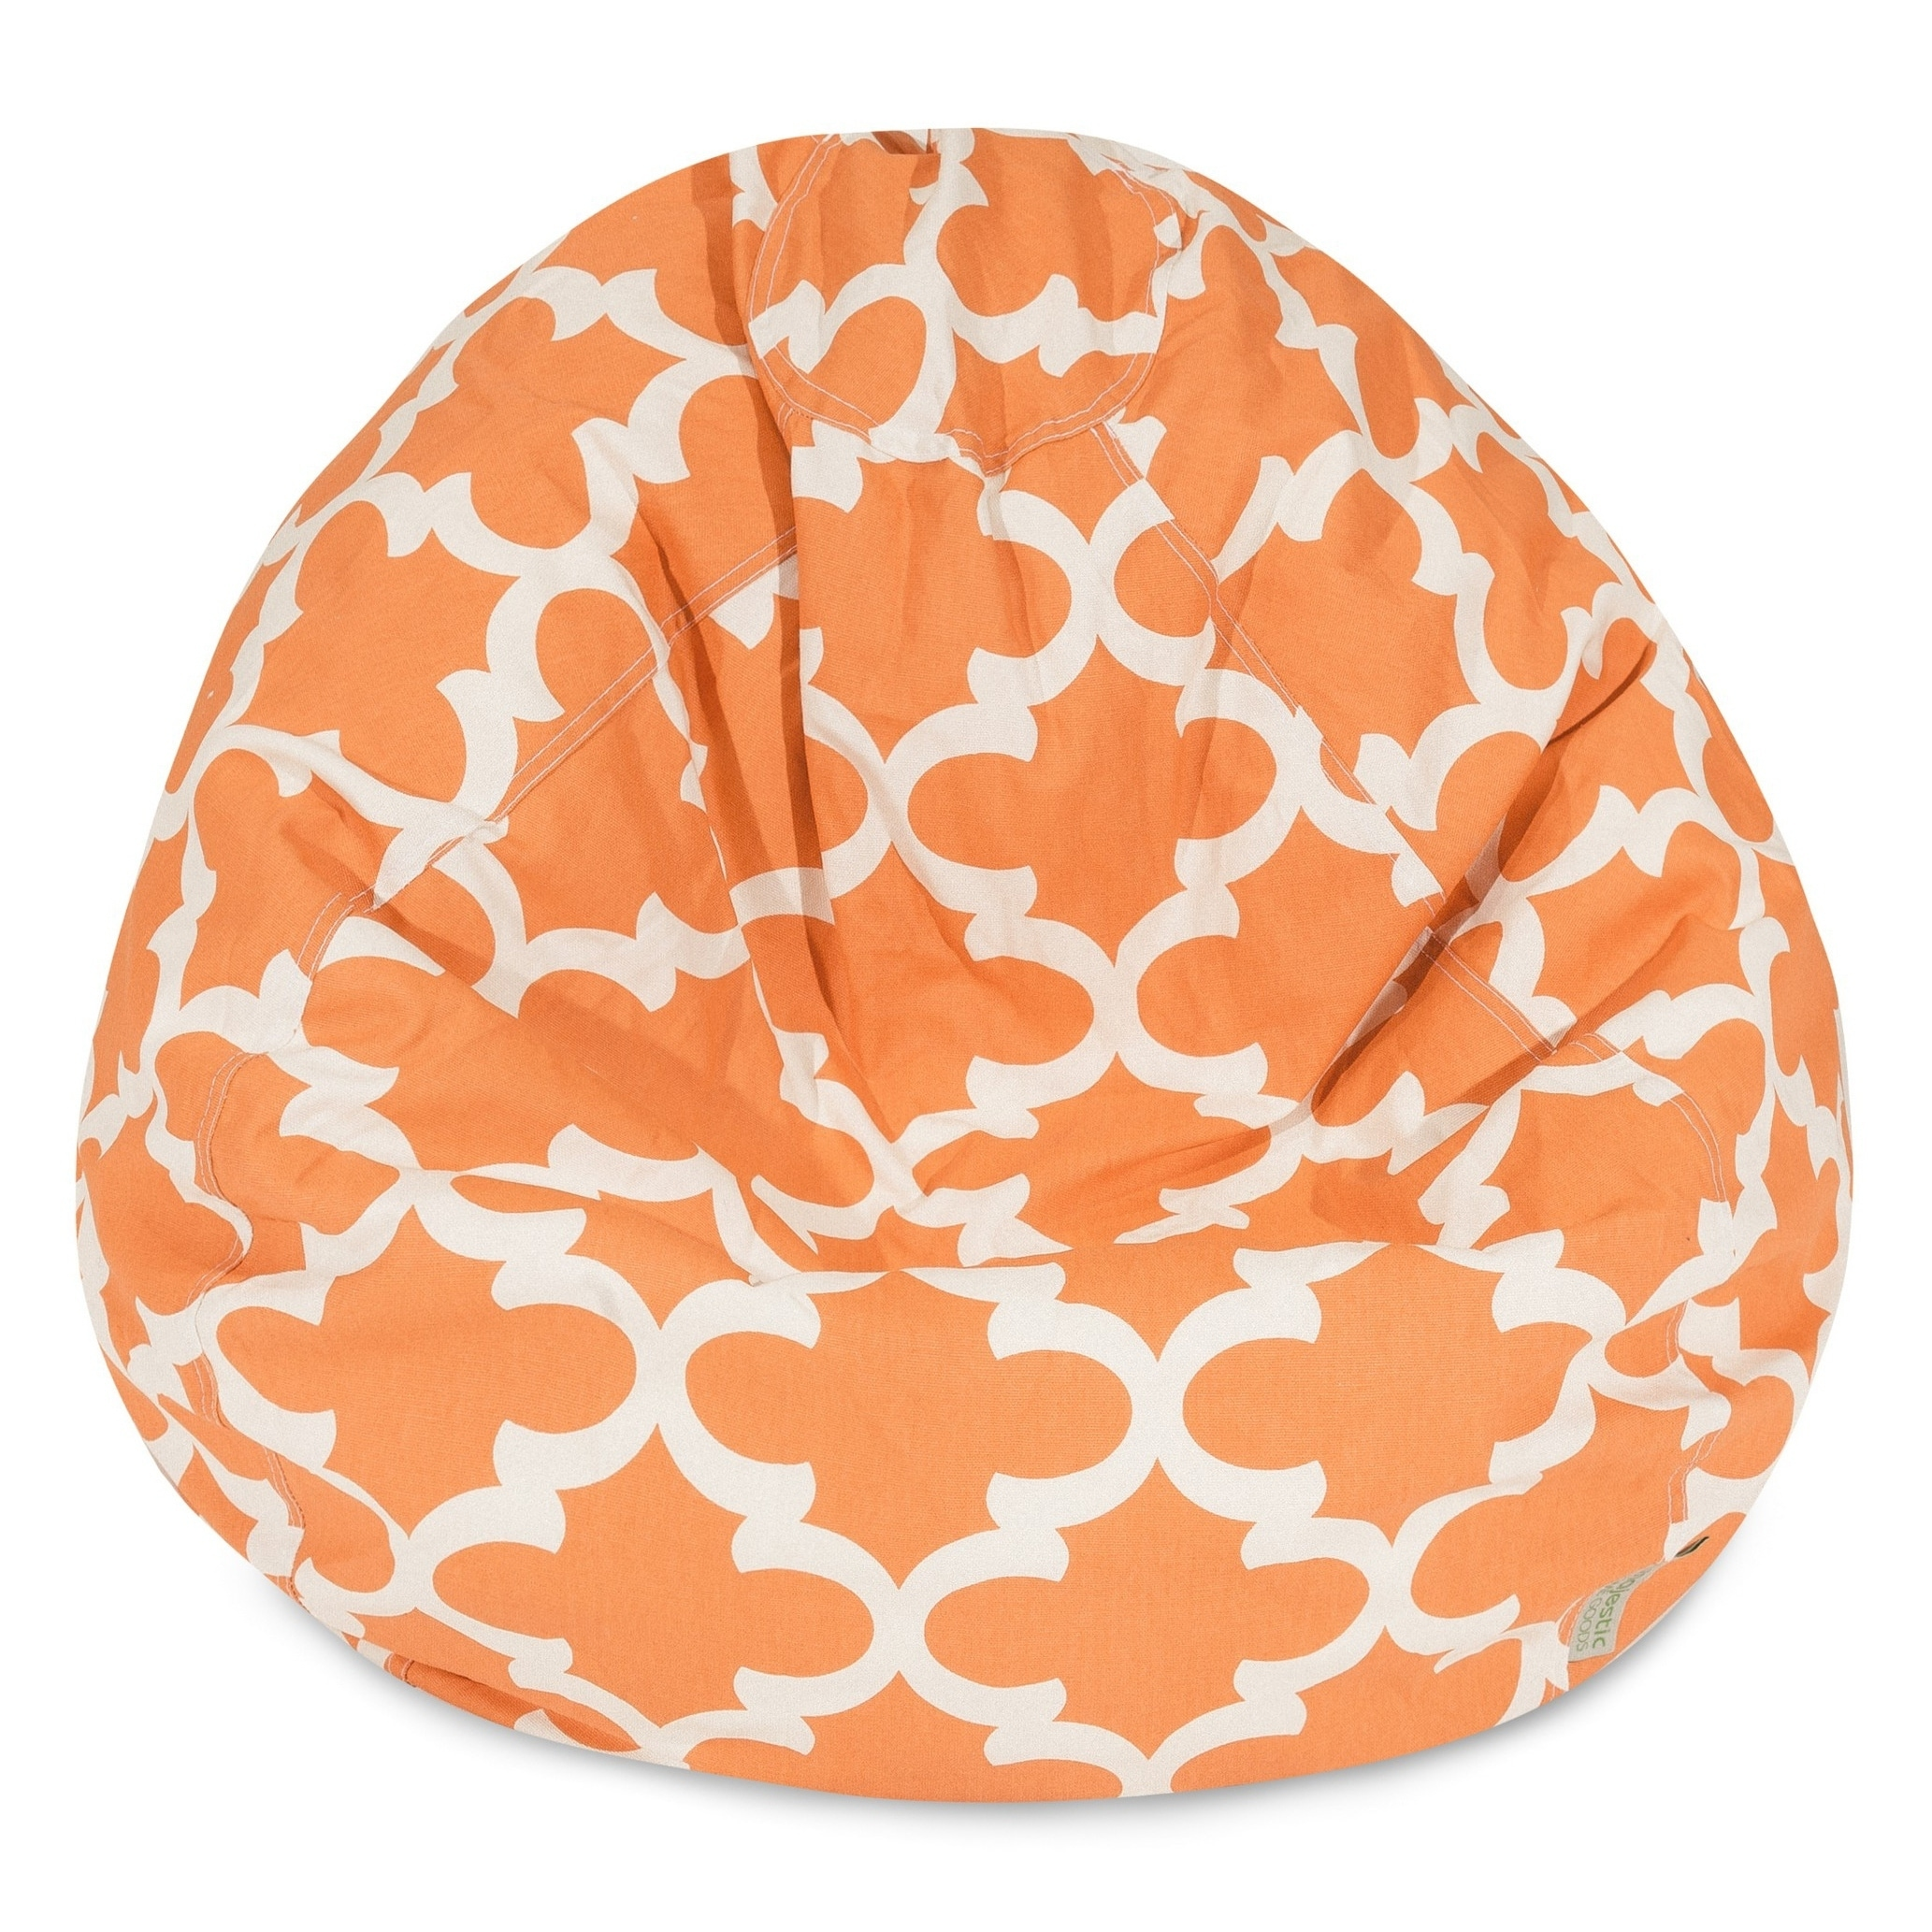 Majestic Home Goods Trellis Classic Bean Bag Chair Small/Large